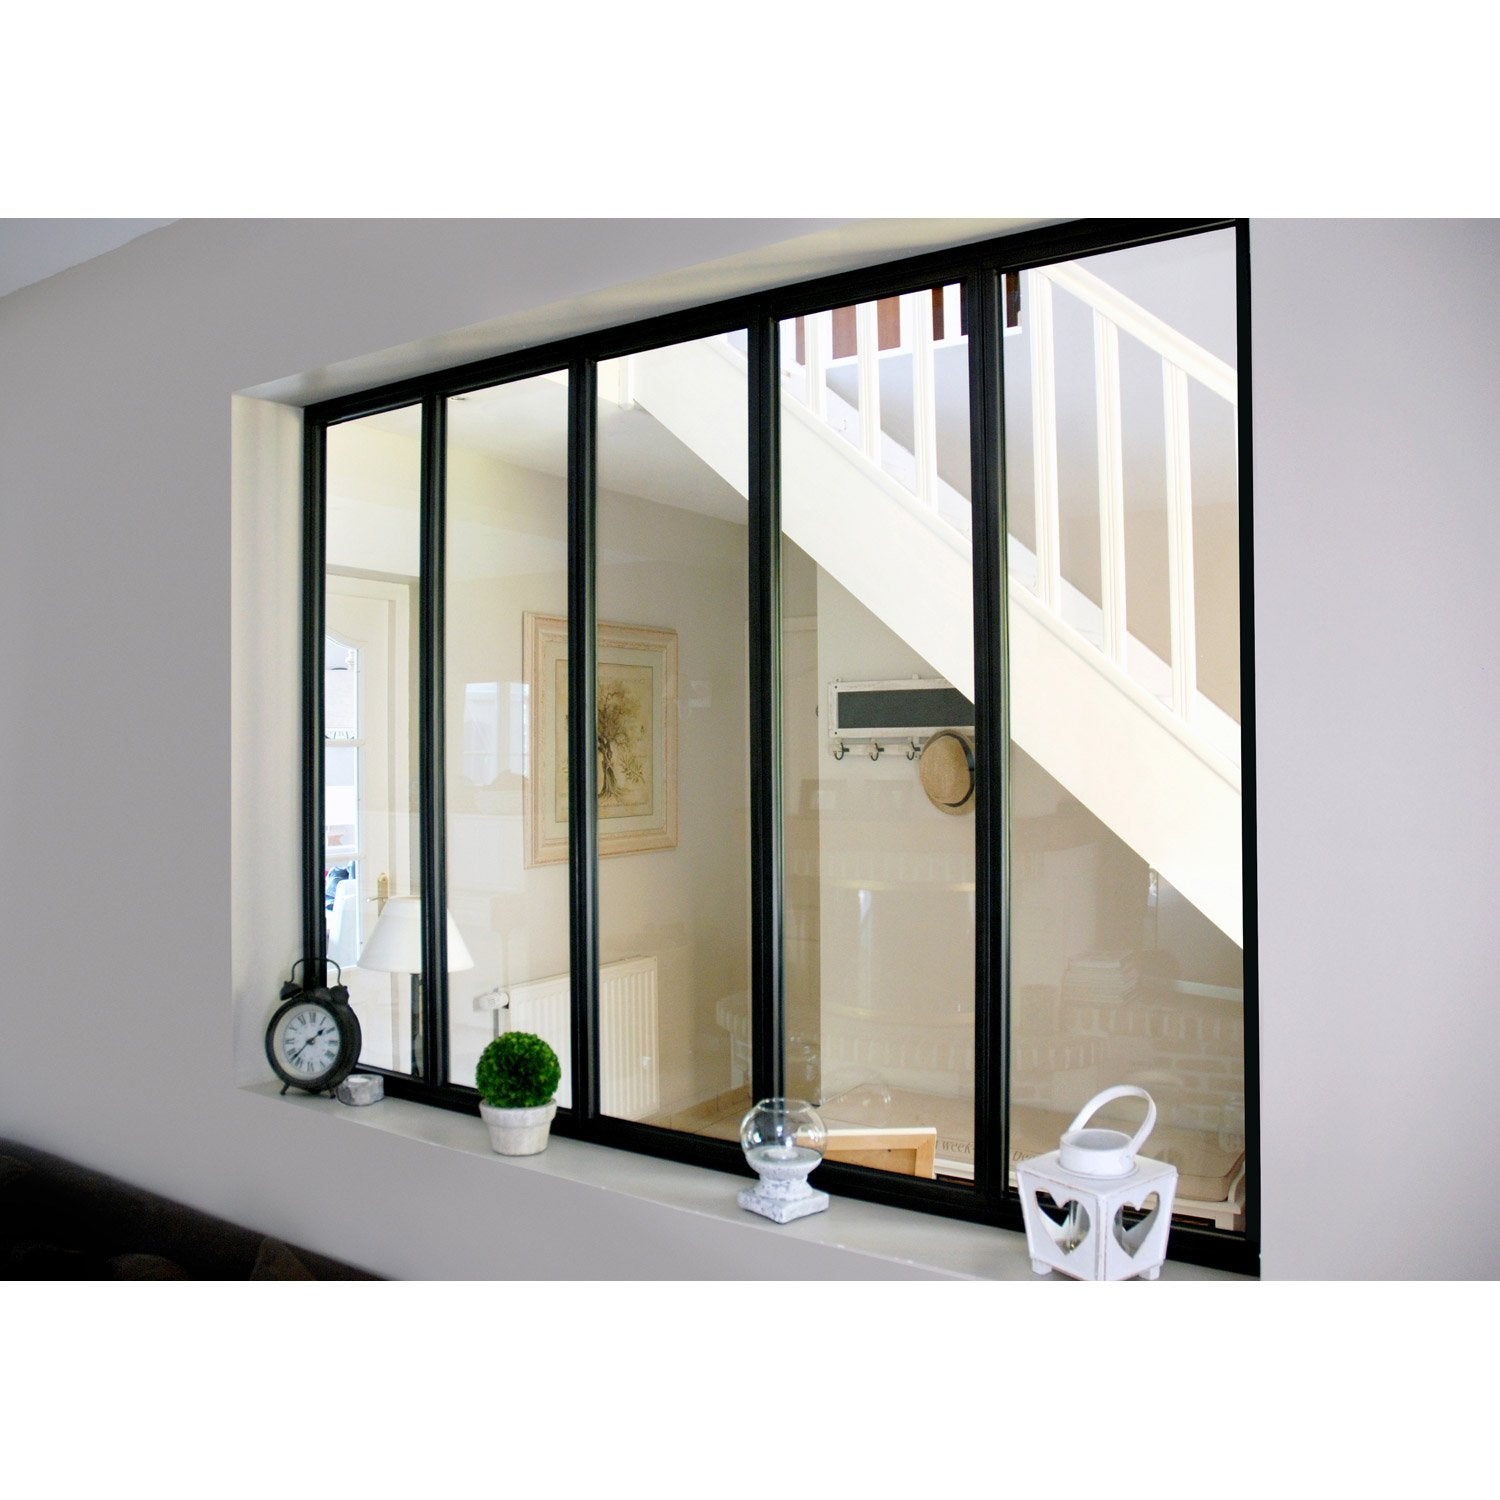 Verri re d 39 int rieur atelier en kit aluminium noir 5 for Verriere d interieur